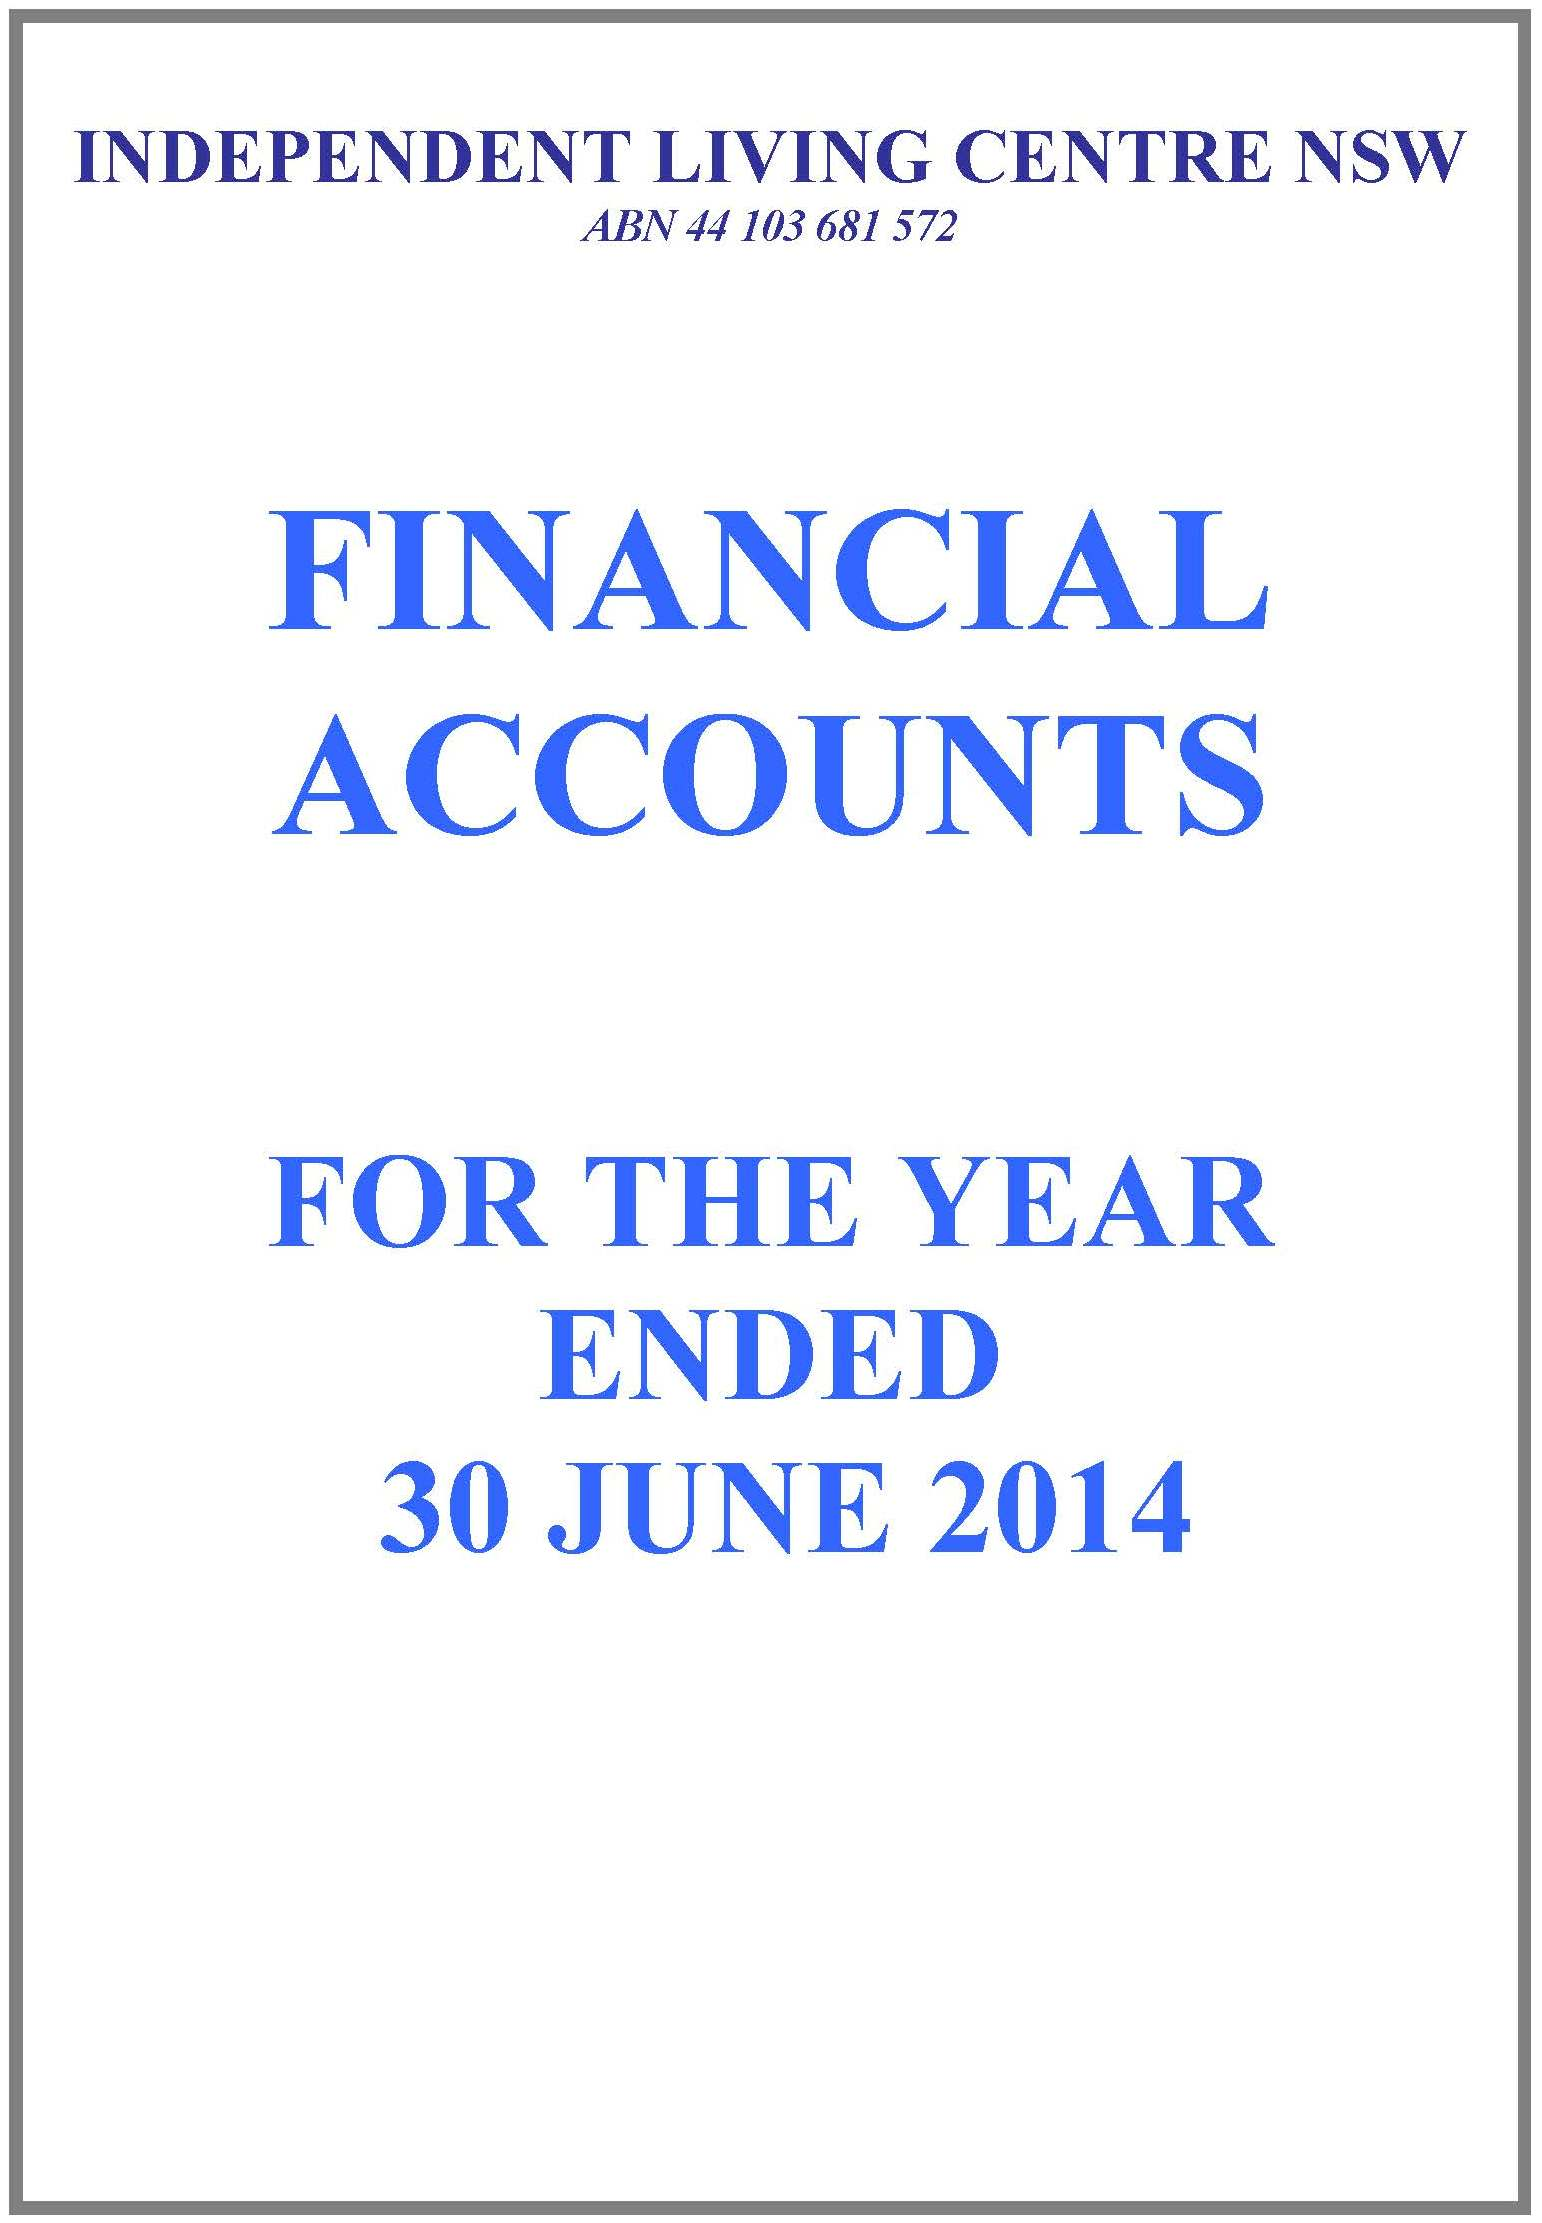 2013-2014 ILC Financial Report